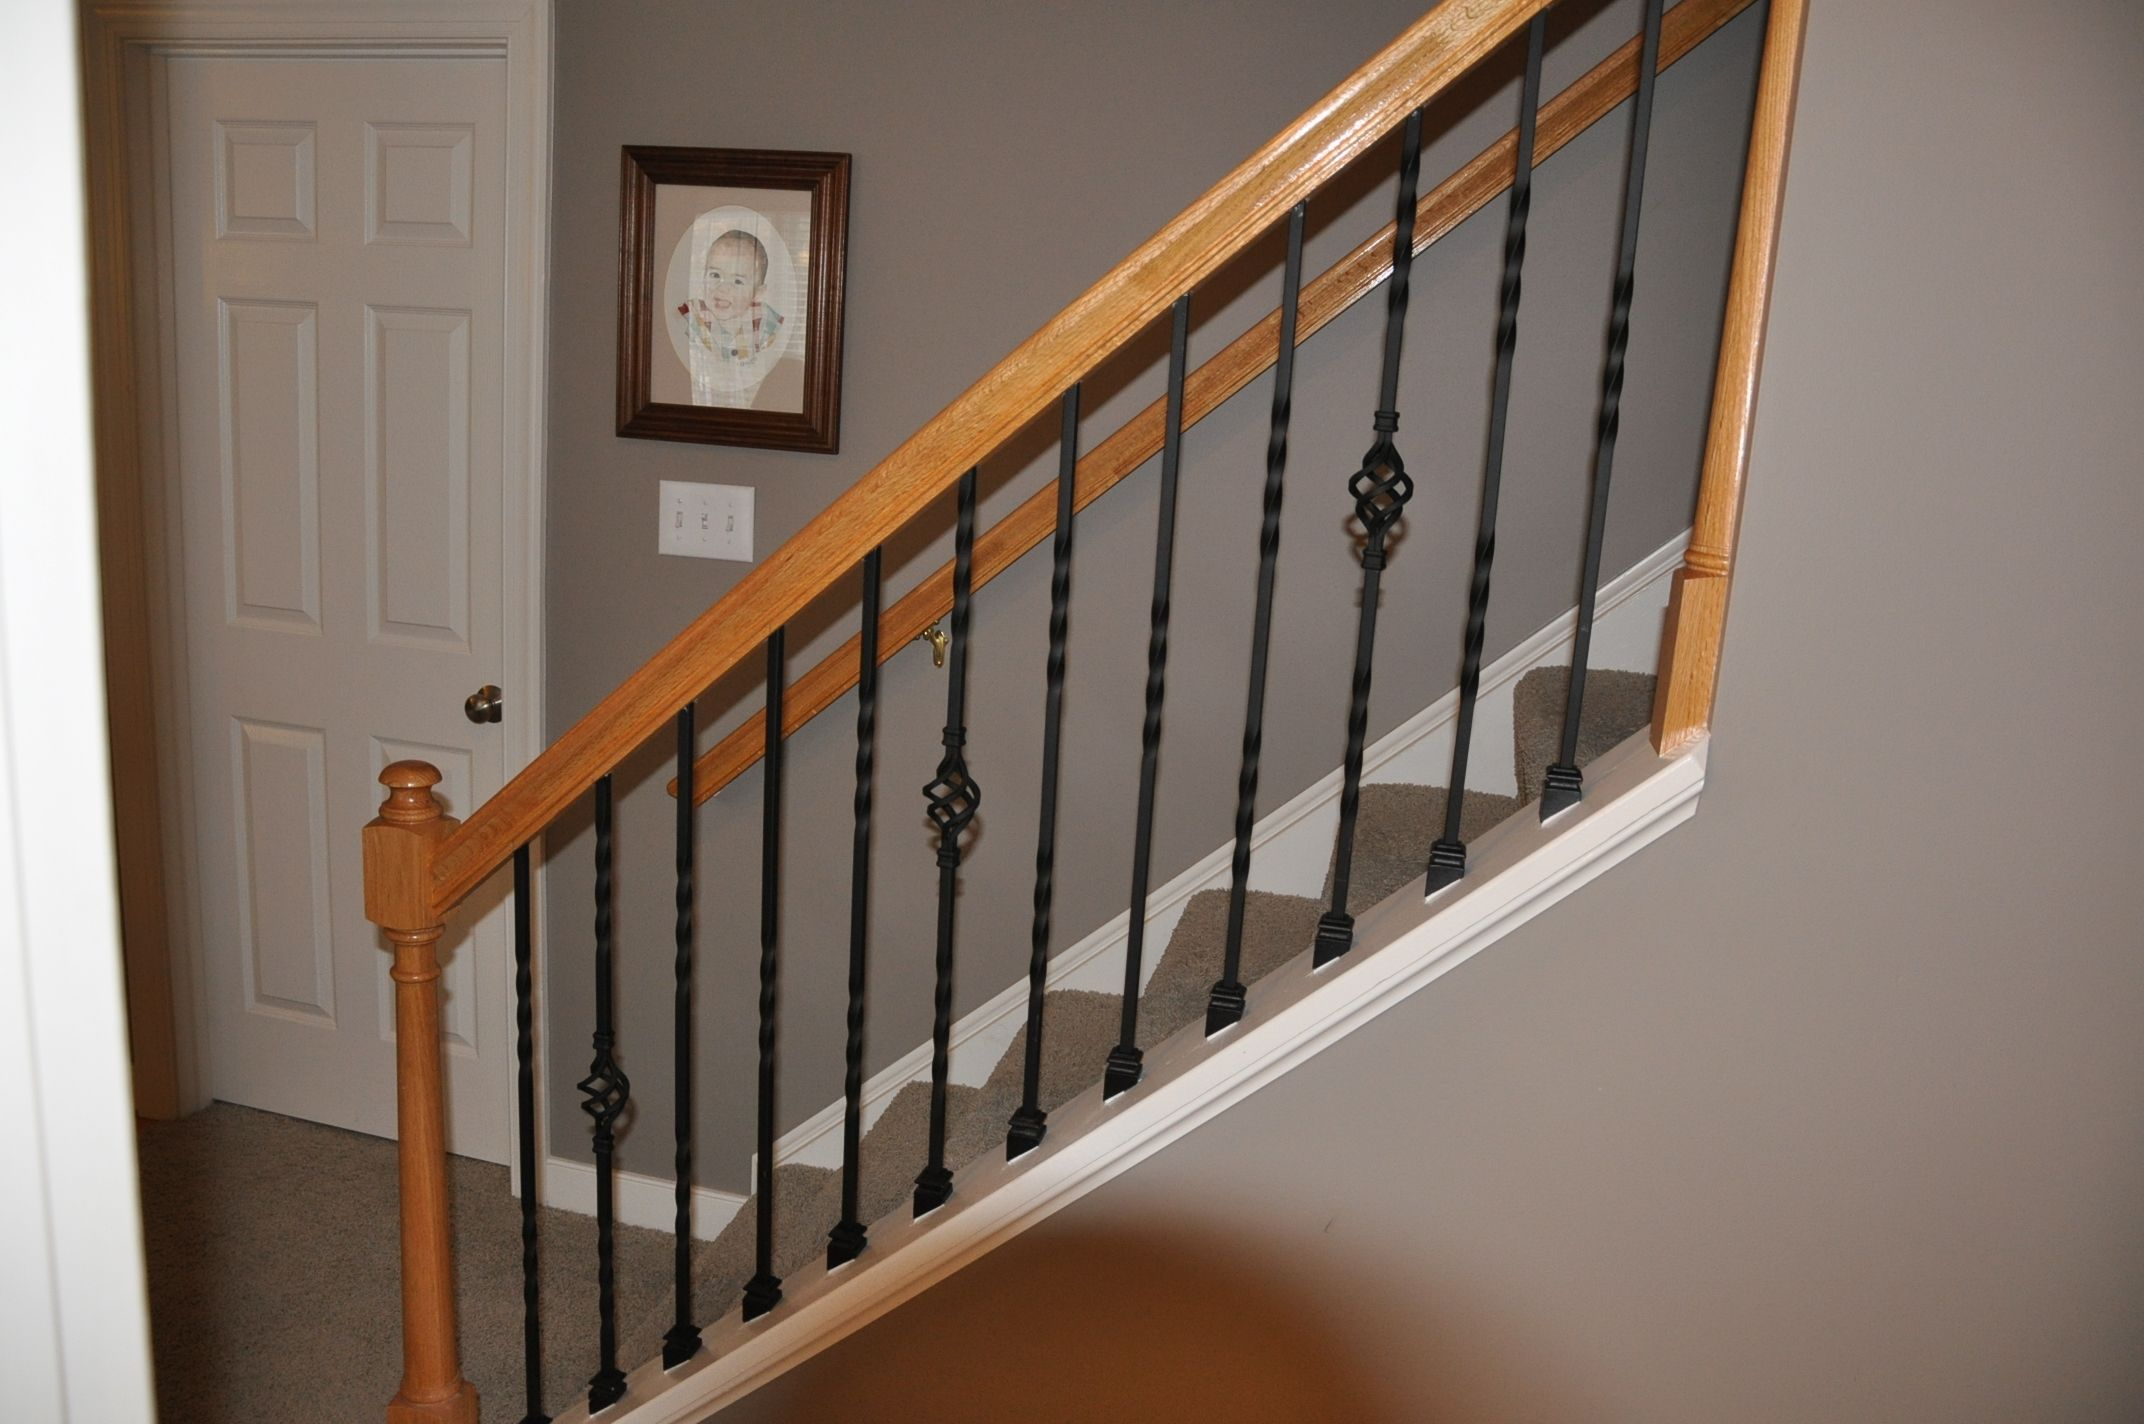 Wrought Iron Stair Railing Home Decoration Ideas The home office